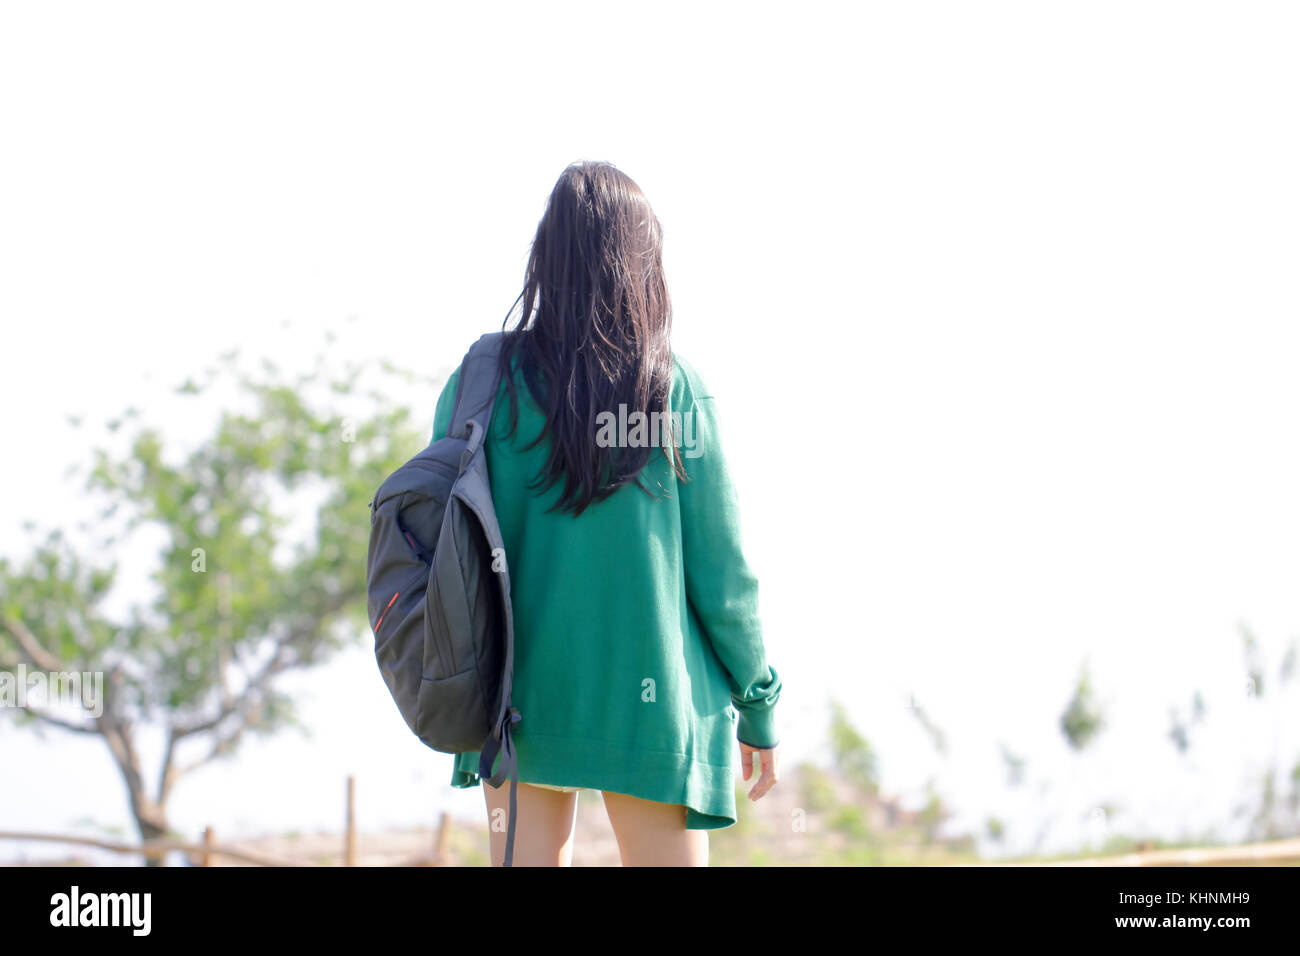 Straight perm edinburgh - Back View Of Woman With Black Long Perm Hair In Green Jacket Standing Alone On